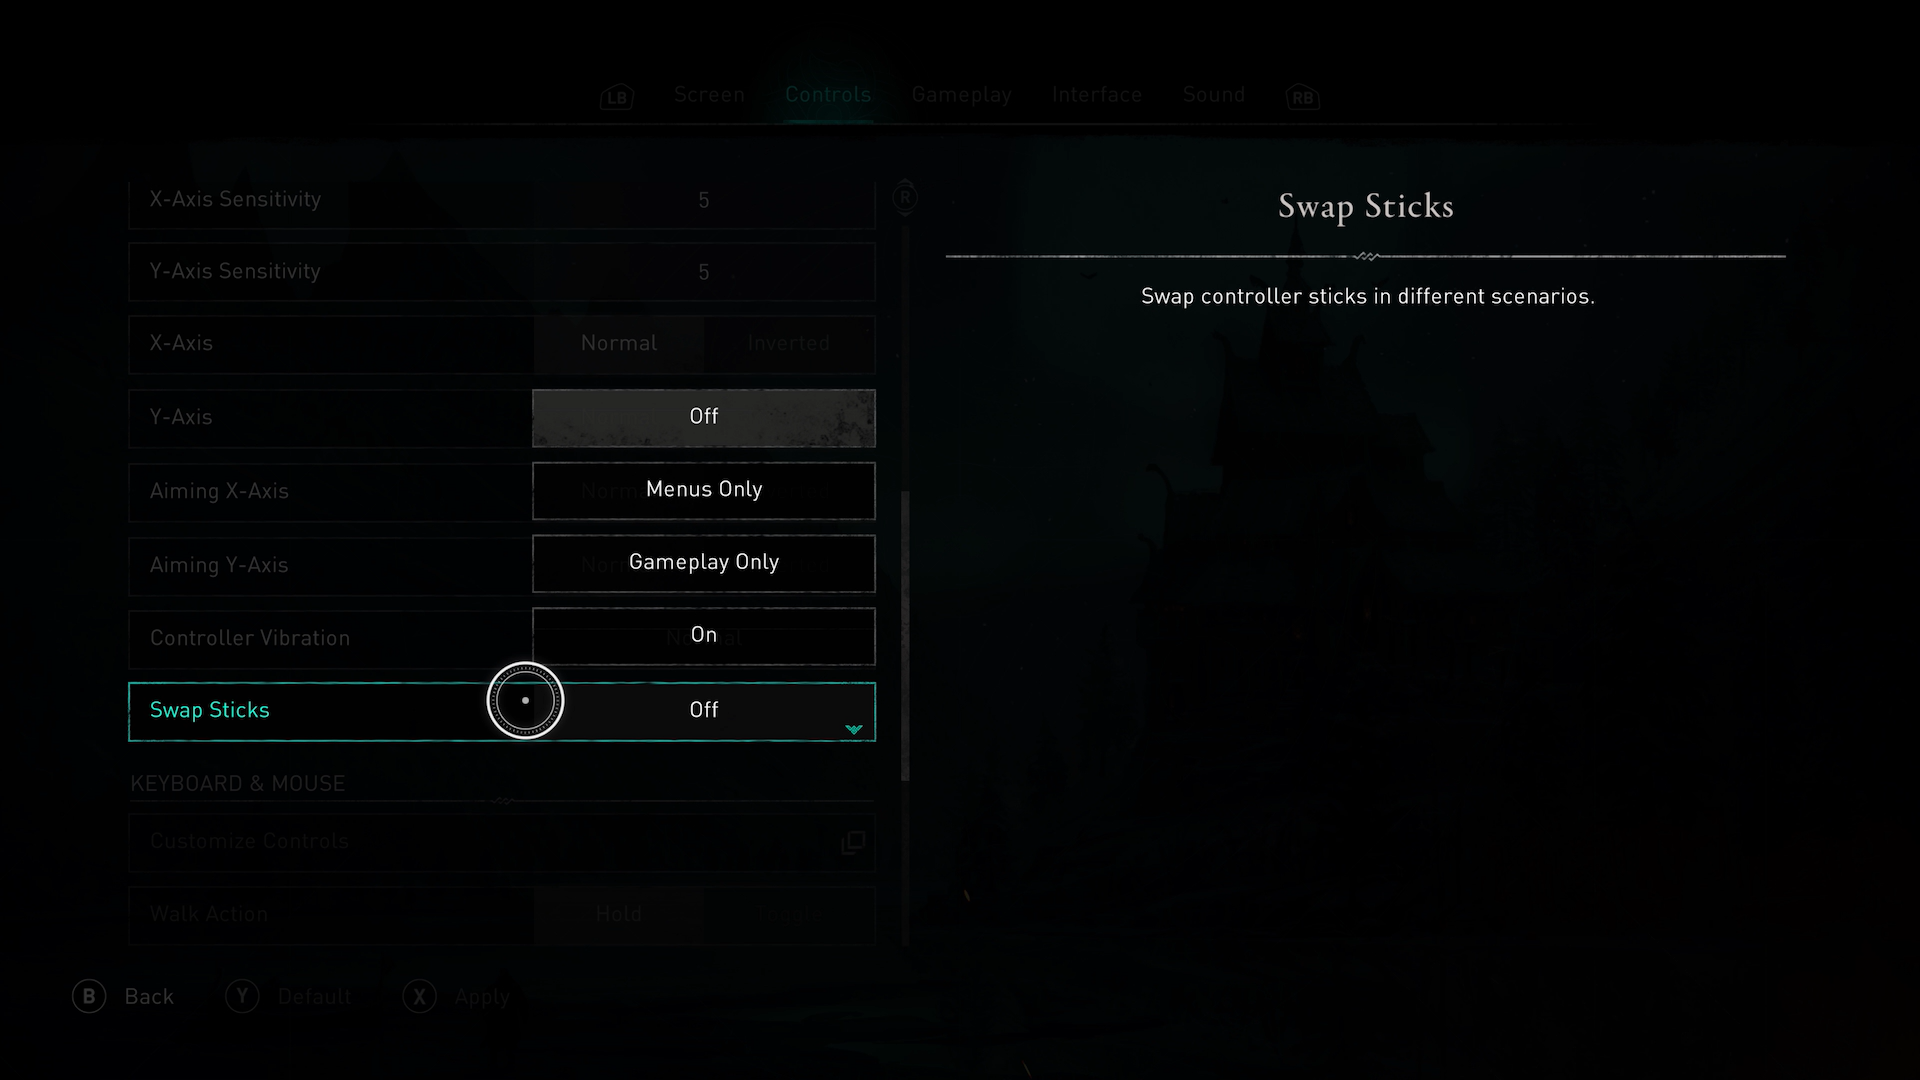 A screenshot showing the Swap Sticks options in Assassins Creed Valhalla